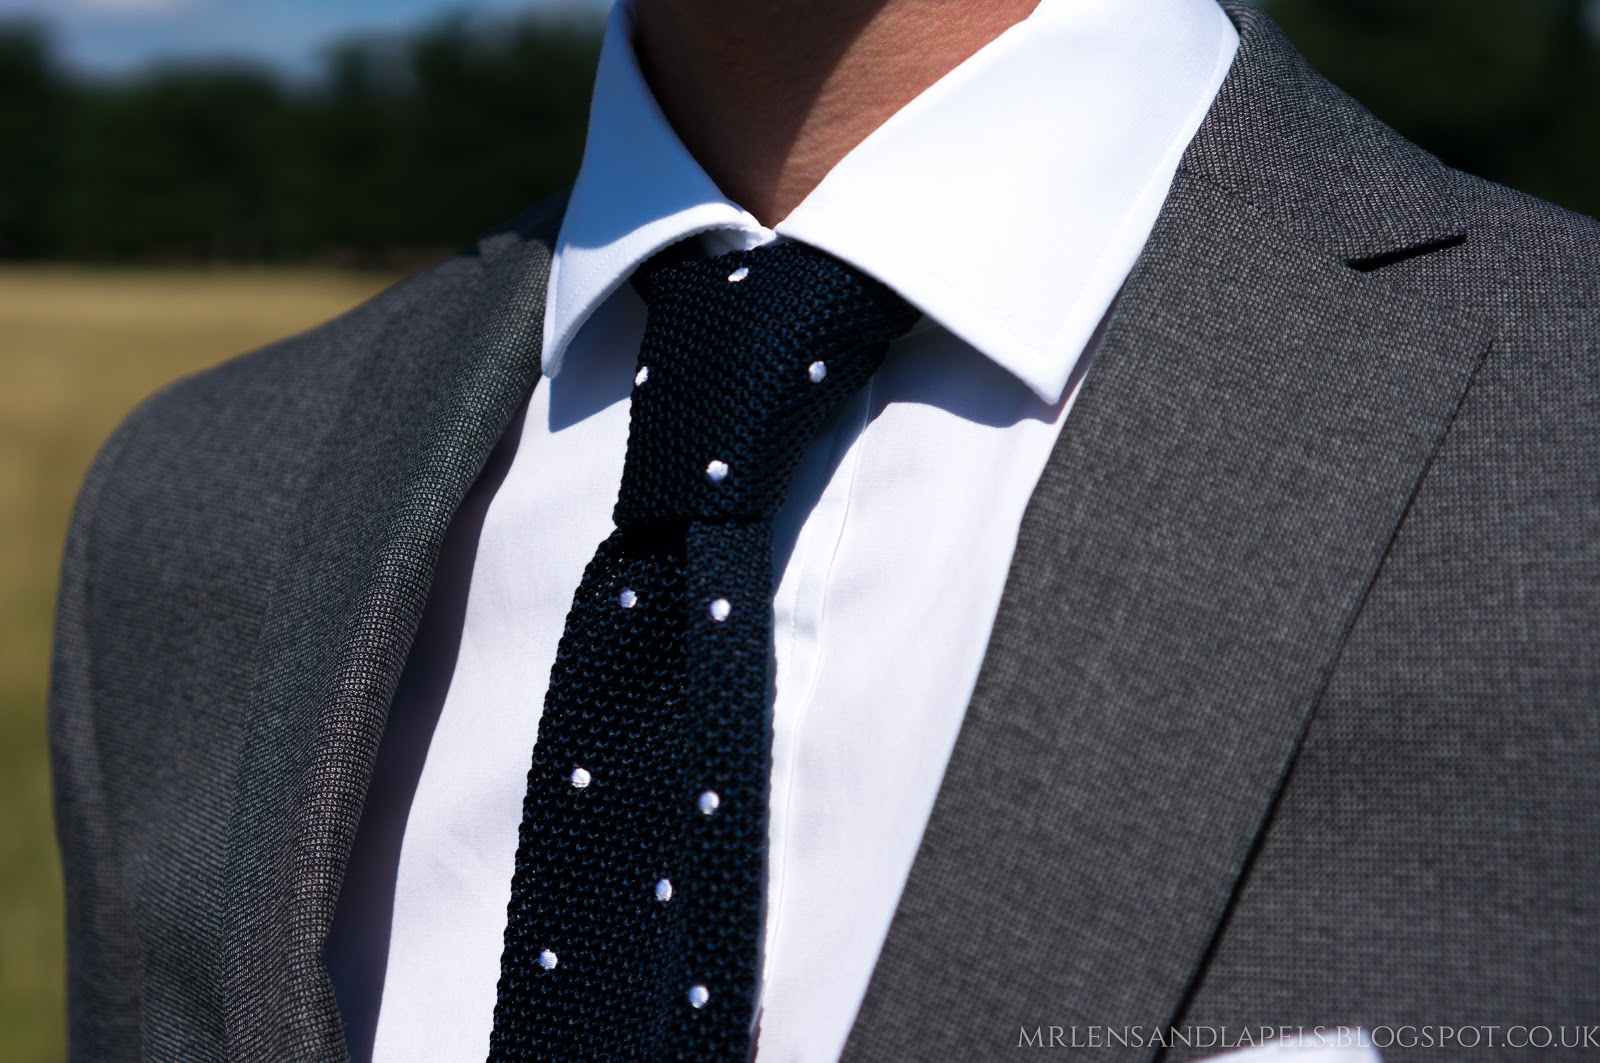 TM Lewin plain phoenix charcoal skinny fit suit navy knitted polka dot spotted tie white pocket square white shirt